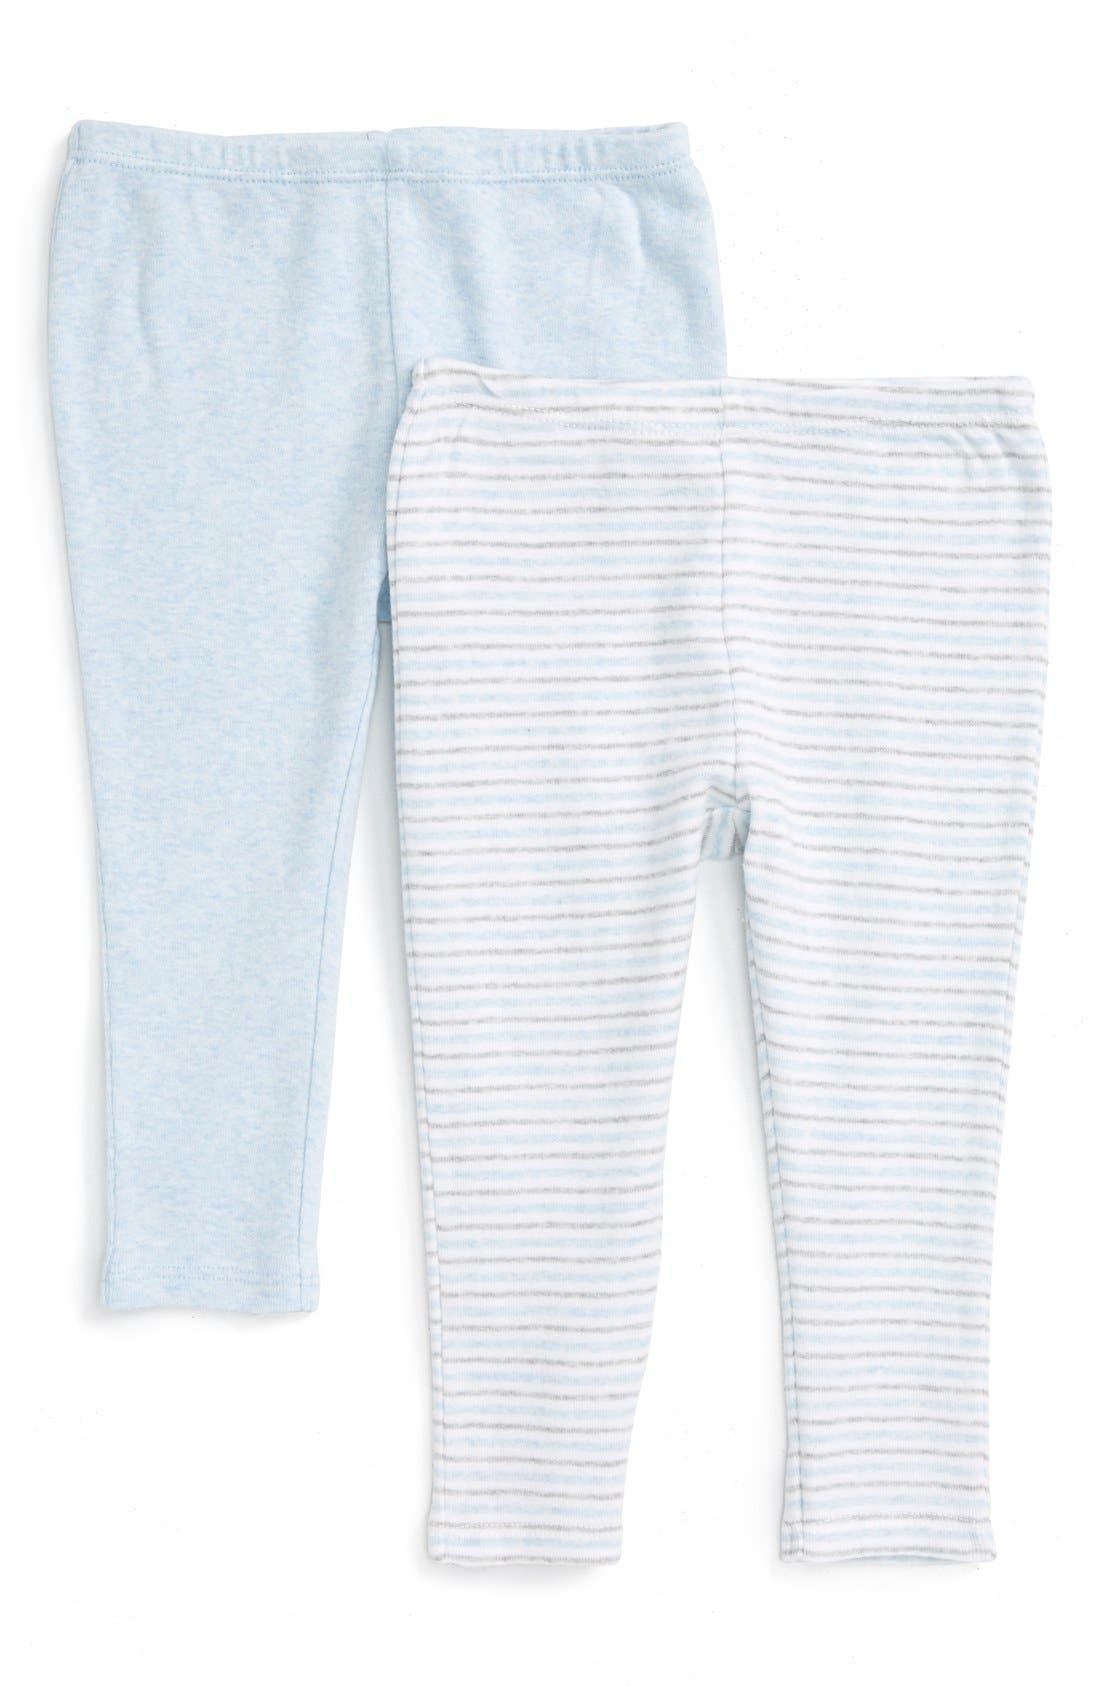 NORDSTROM BABY 2-Pack Leggings, Main, color, BLUE PRECIOUS HEATHER PACK